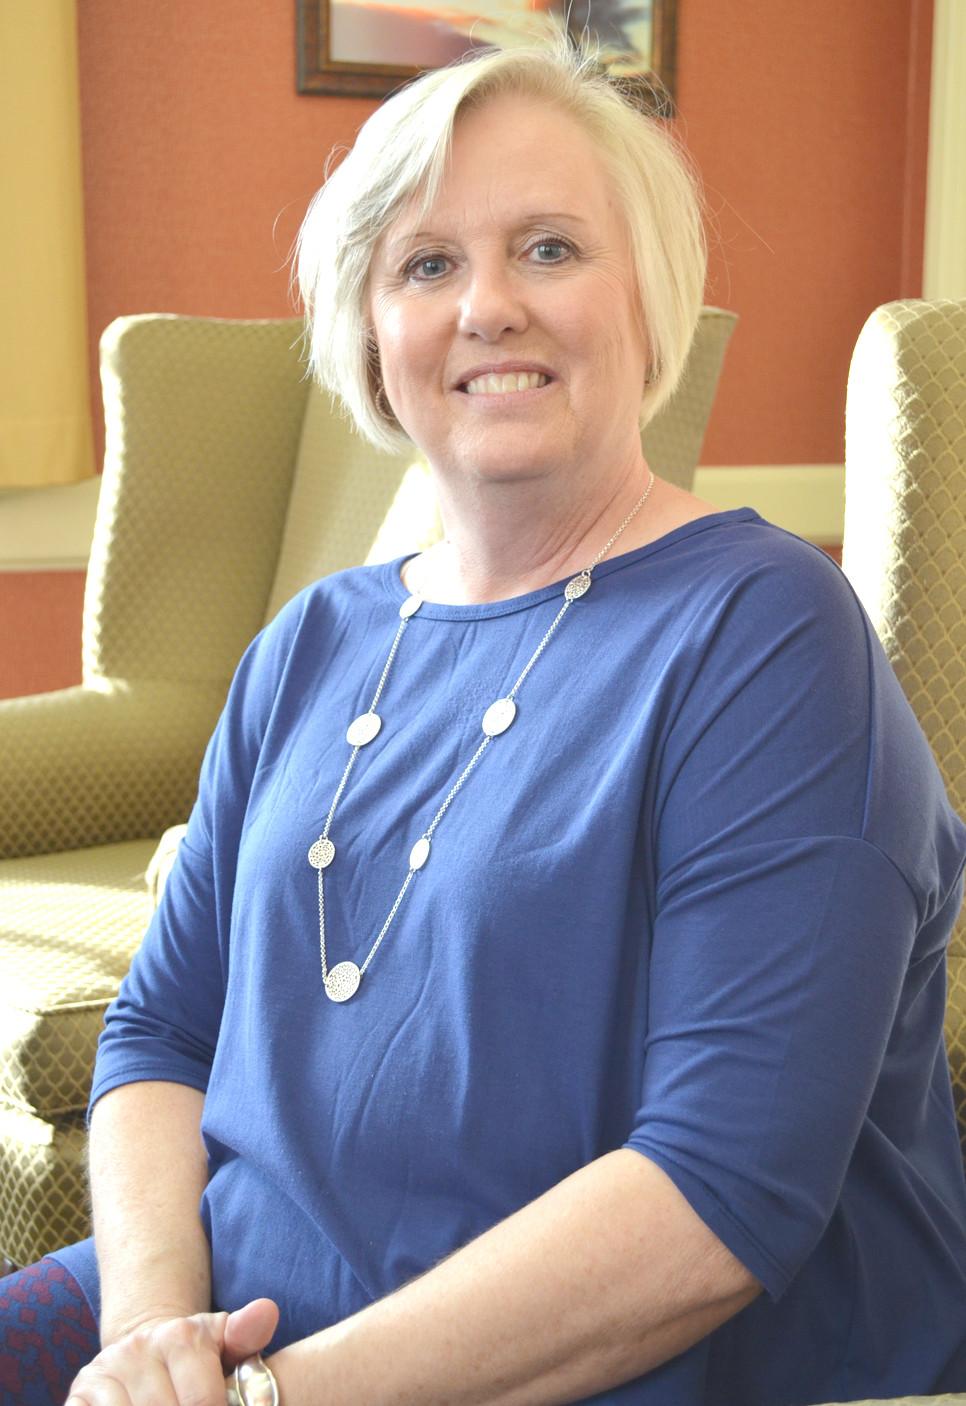 """MARY BETH KIGER will share her story of being a breast cancer survivor during """"Love Lights A Tree"""" at Versailles Presbyterian Church in downtown Versailles on Monday, Dec. 5, at 7 p.m. The ceremony includes a candlelight service in memory of lives lost to cancer and in celebration of cancer survivors. (Photo by Bob Vlach)"""